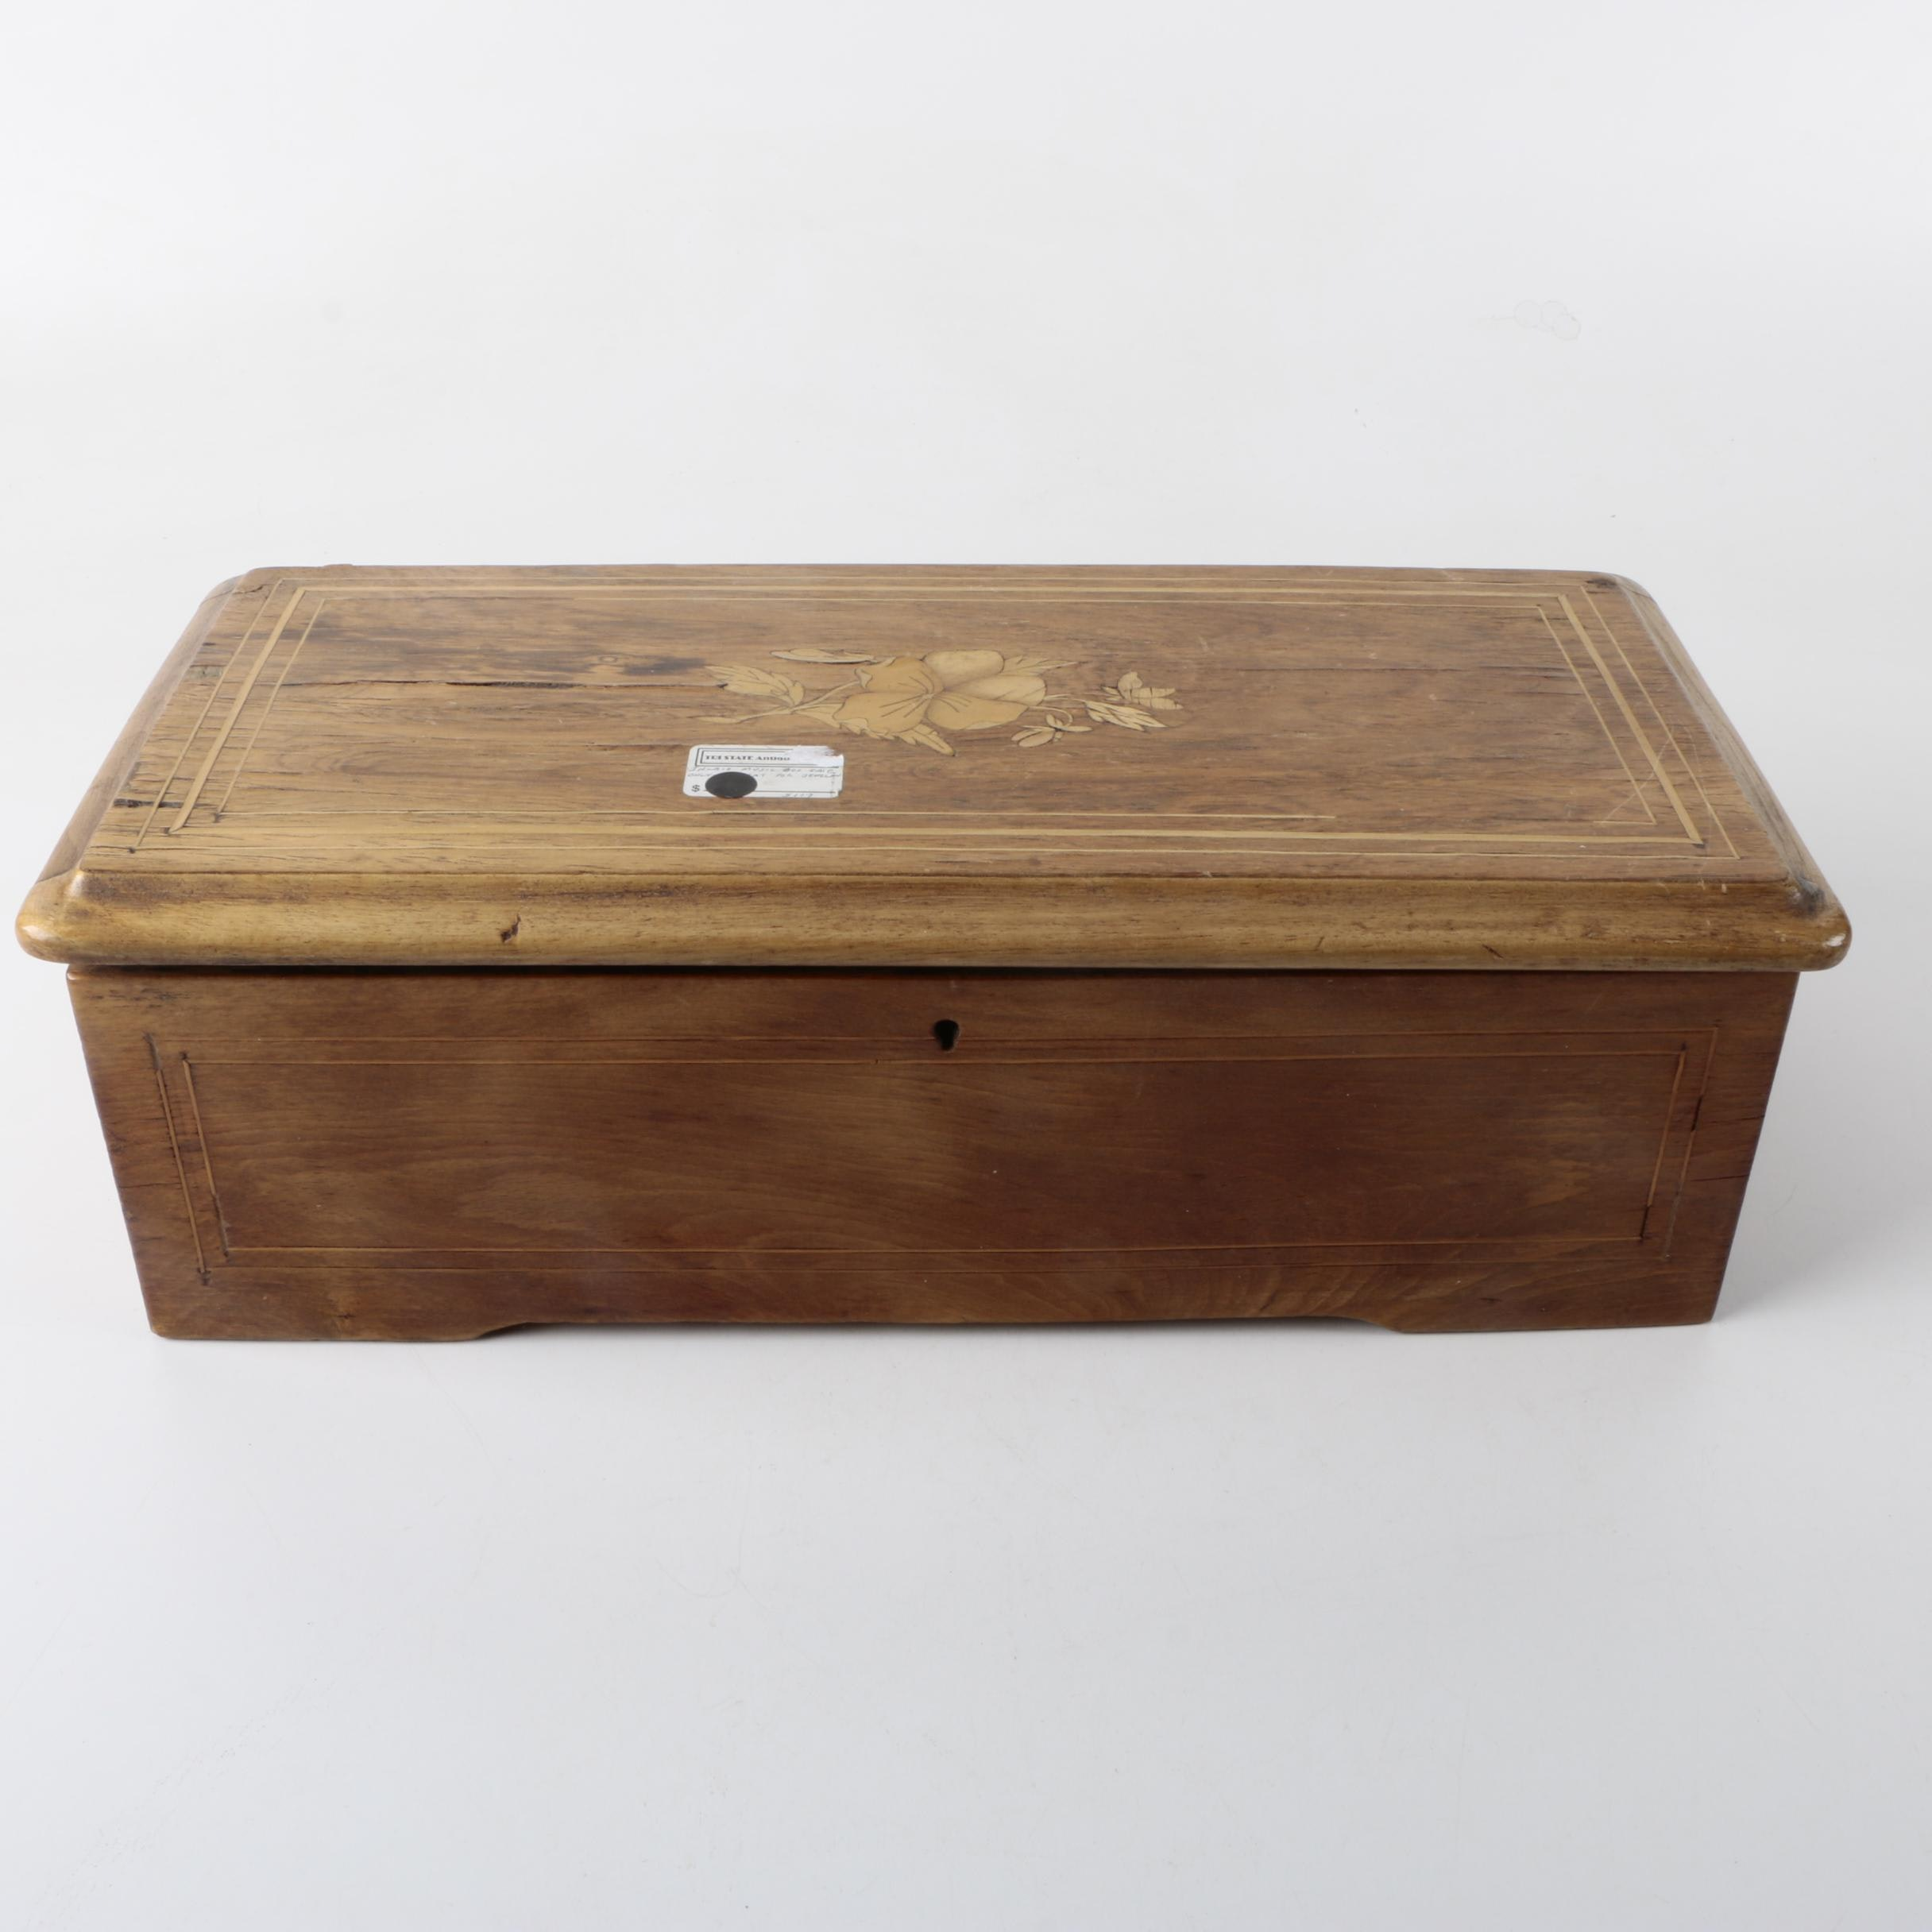 Vintage Wooden Box with Inlaid Floral Motif